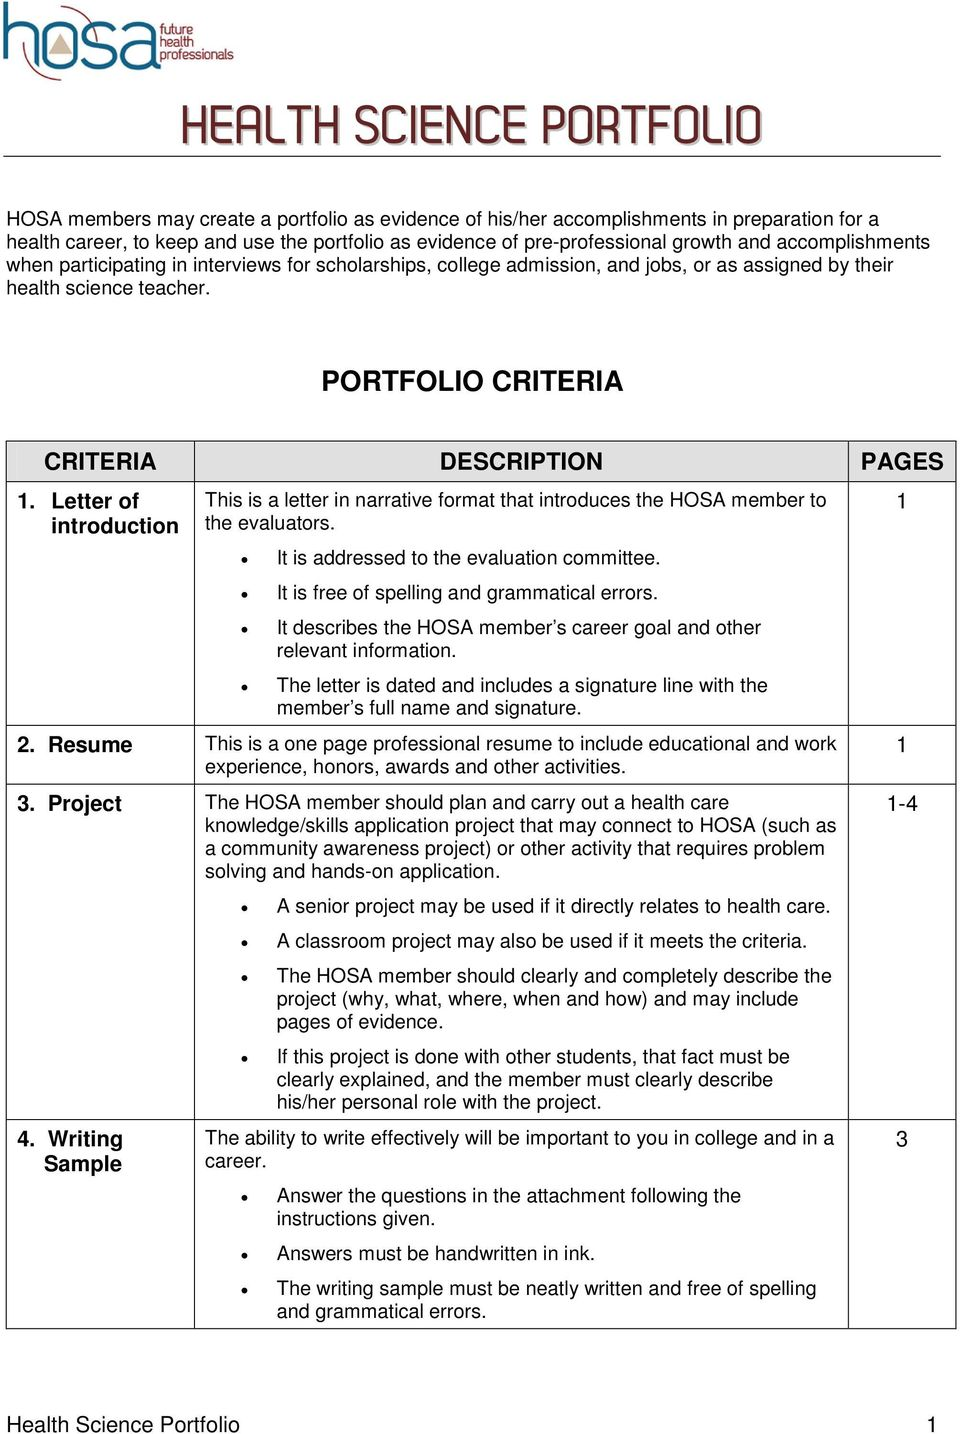 PORTFOLIO CRITERIA CRITERIA DESCRIPTION PAGES. Letter of introduction This is a letter in narrative format that introduces the HOSA member to the evaluators.